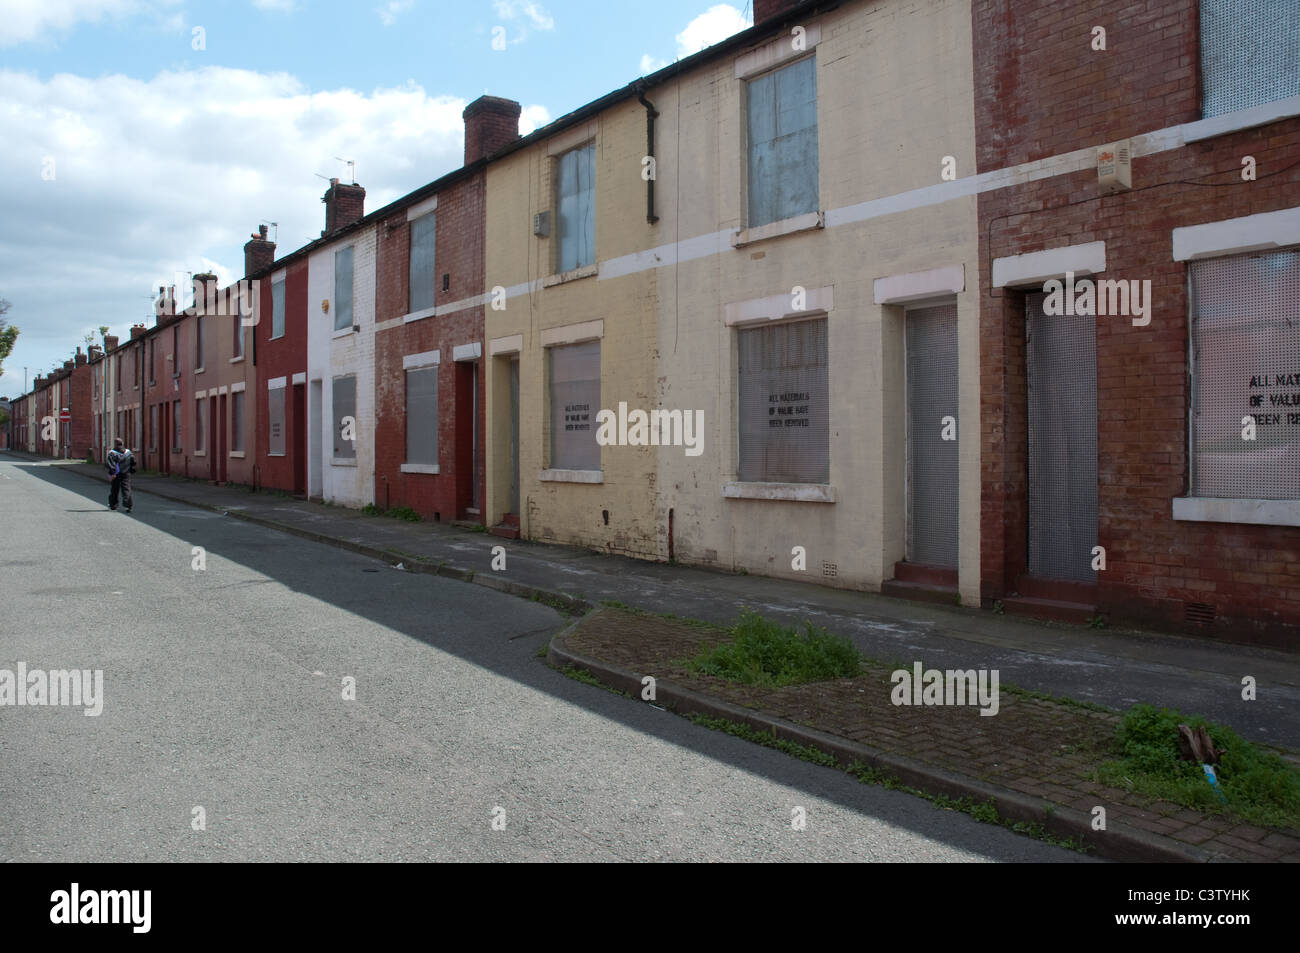 Terraced property in Higher Broughton,Salford, awaiting demolition following Compulsory Purchase Order by Salford - Stock Image